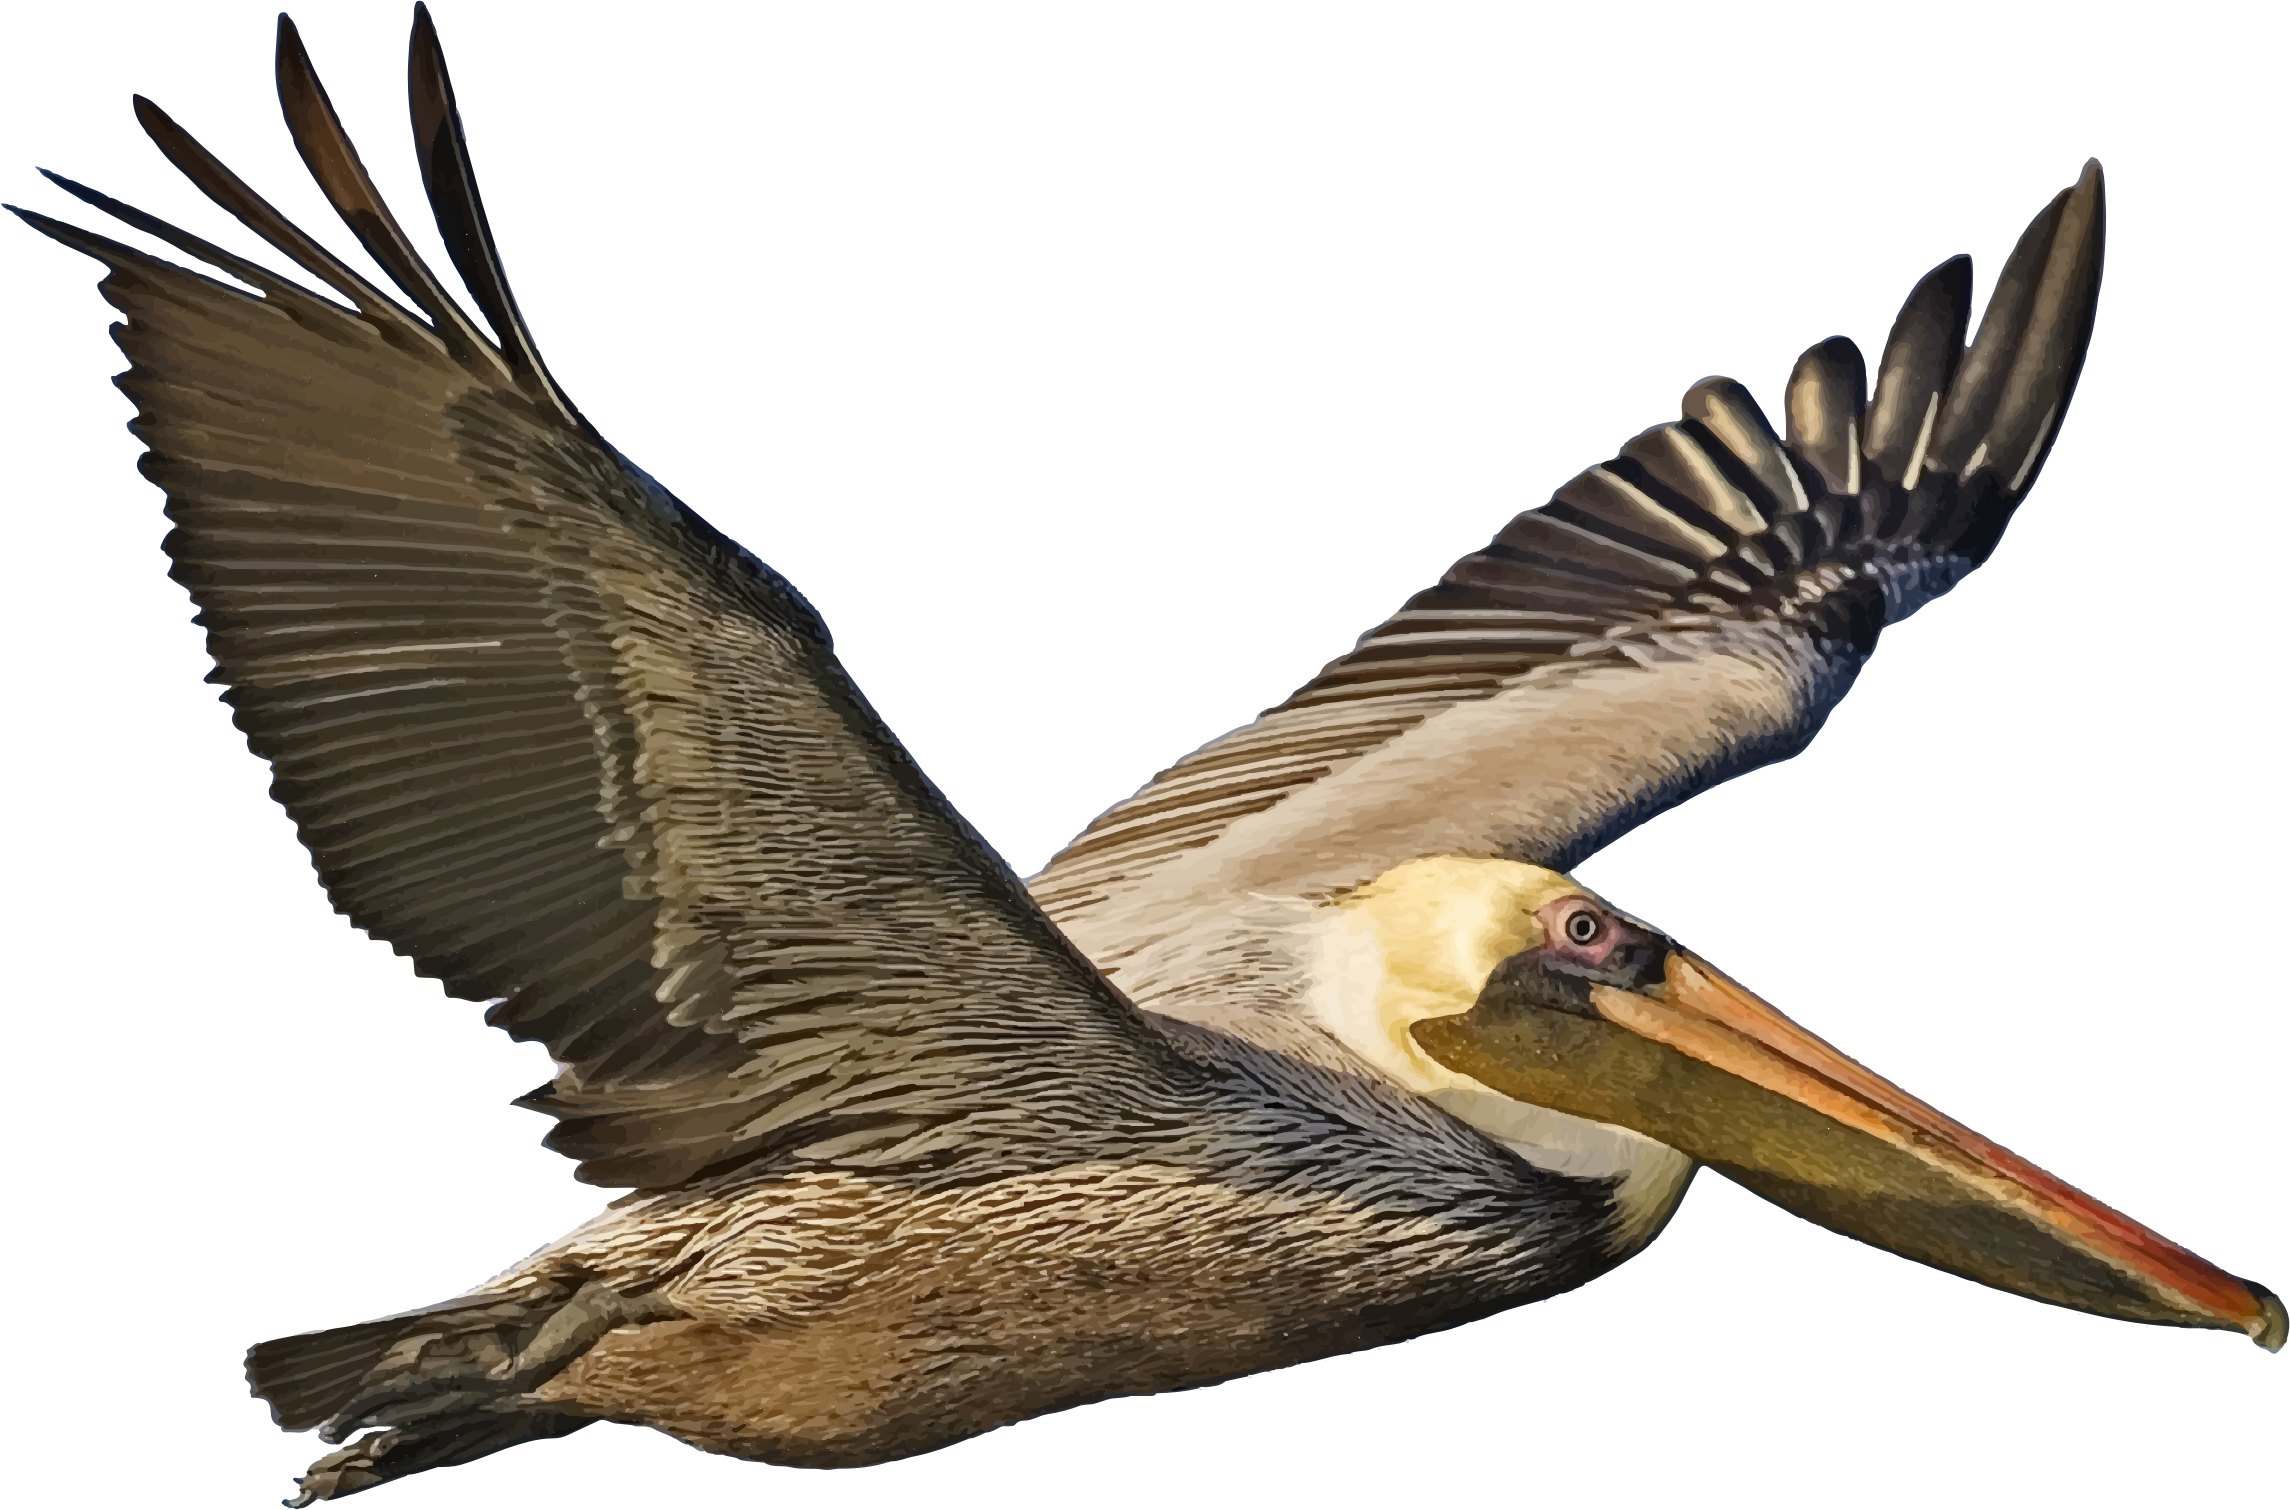 Brown Pelican In Flight by GDJ